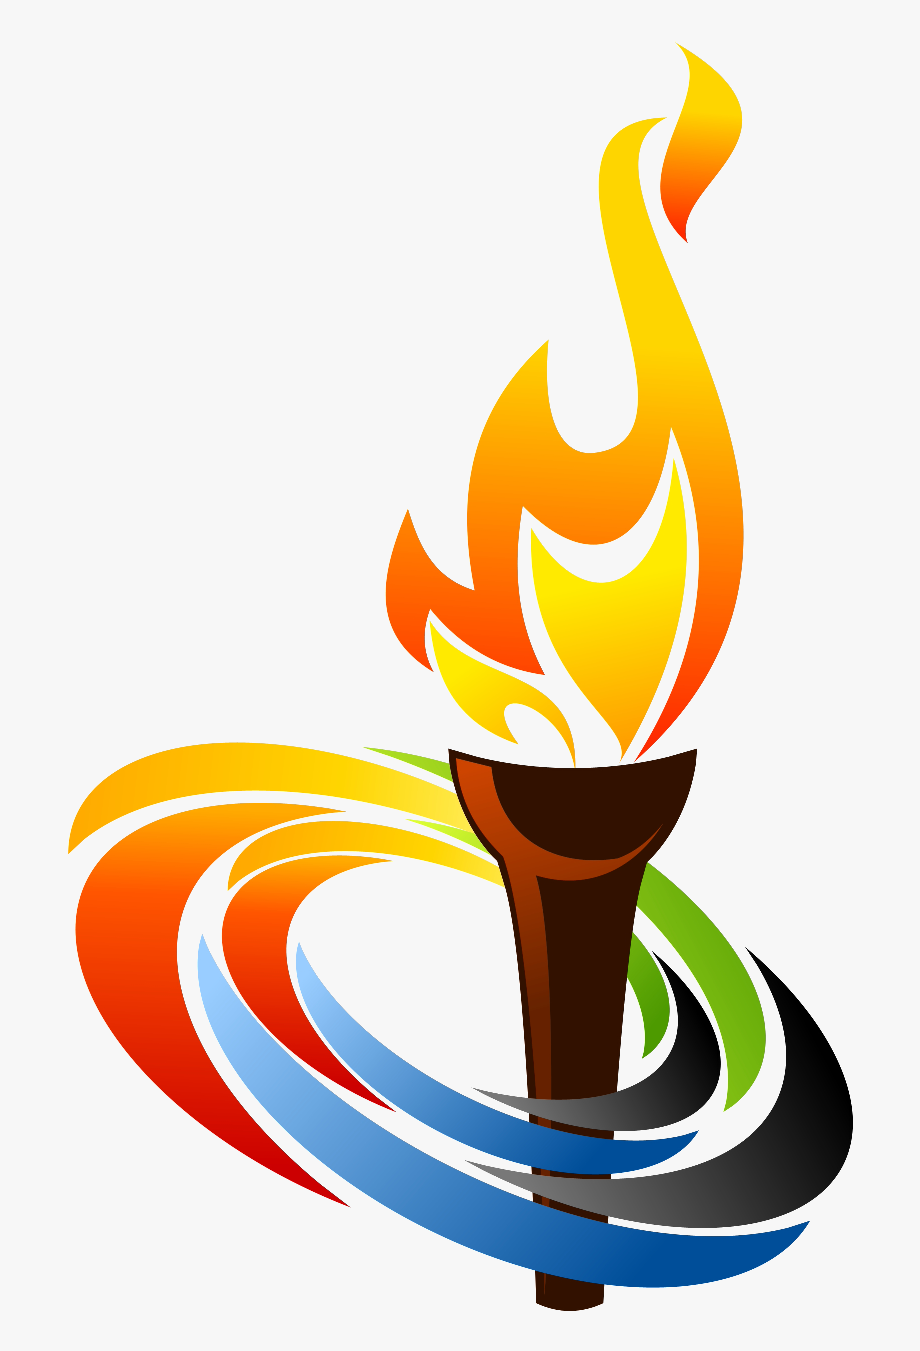 Pics for torch png. Olympics clipart olympics flame